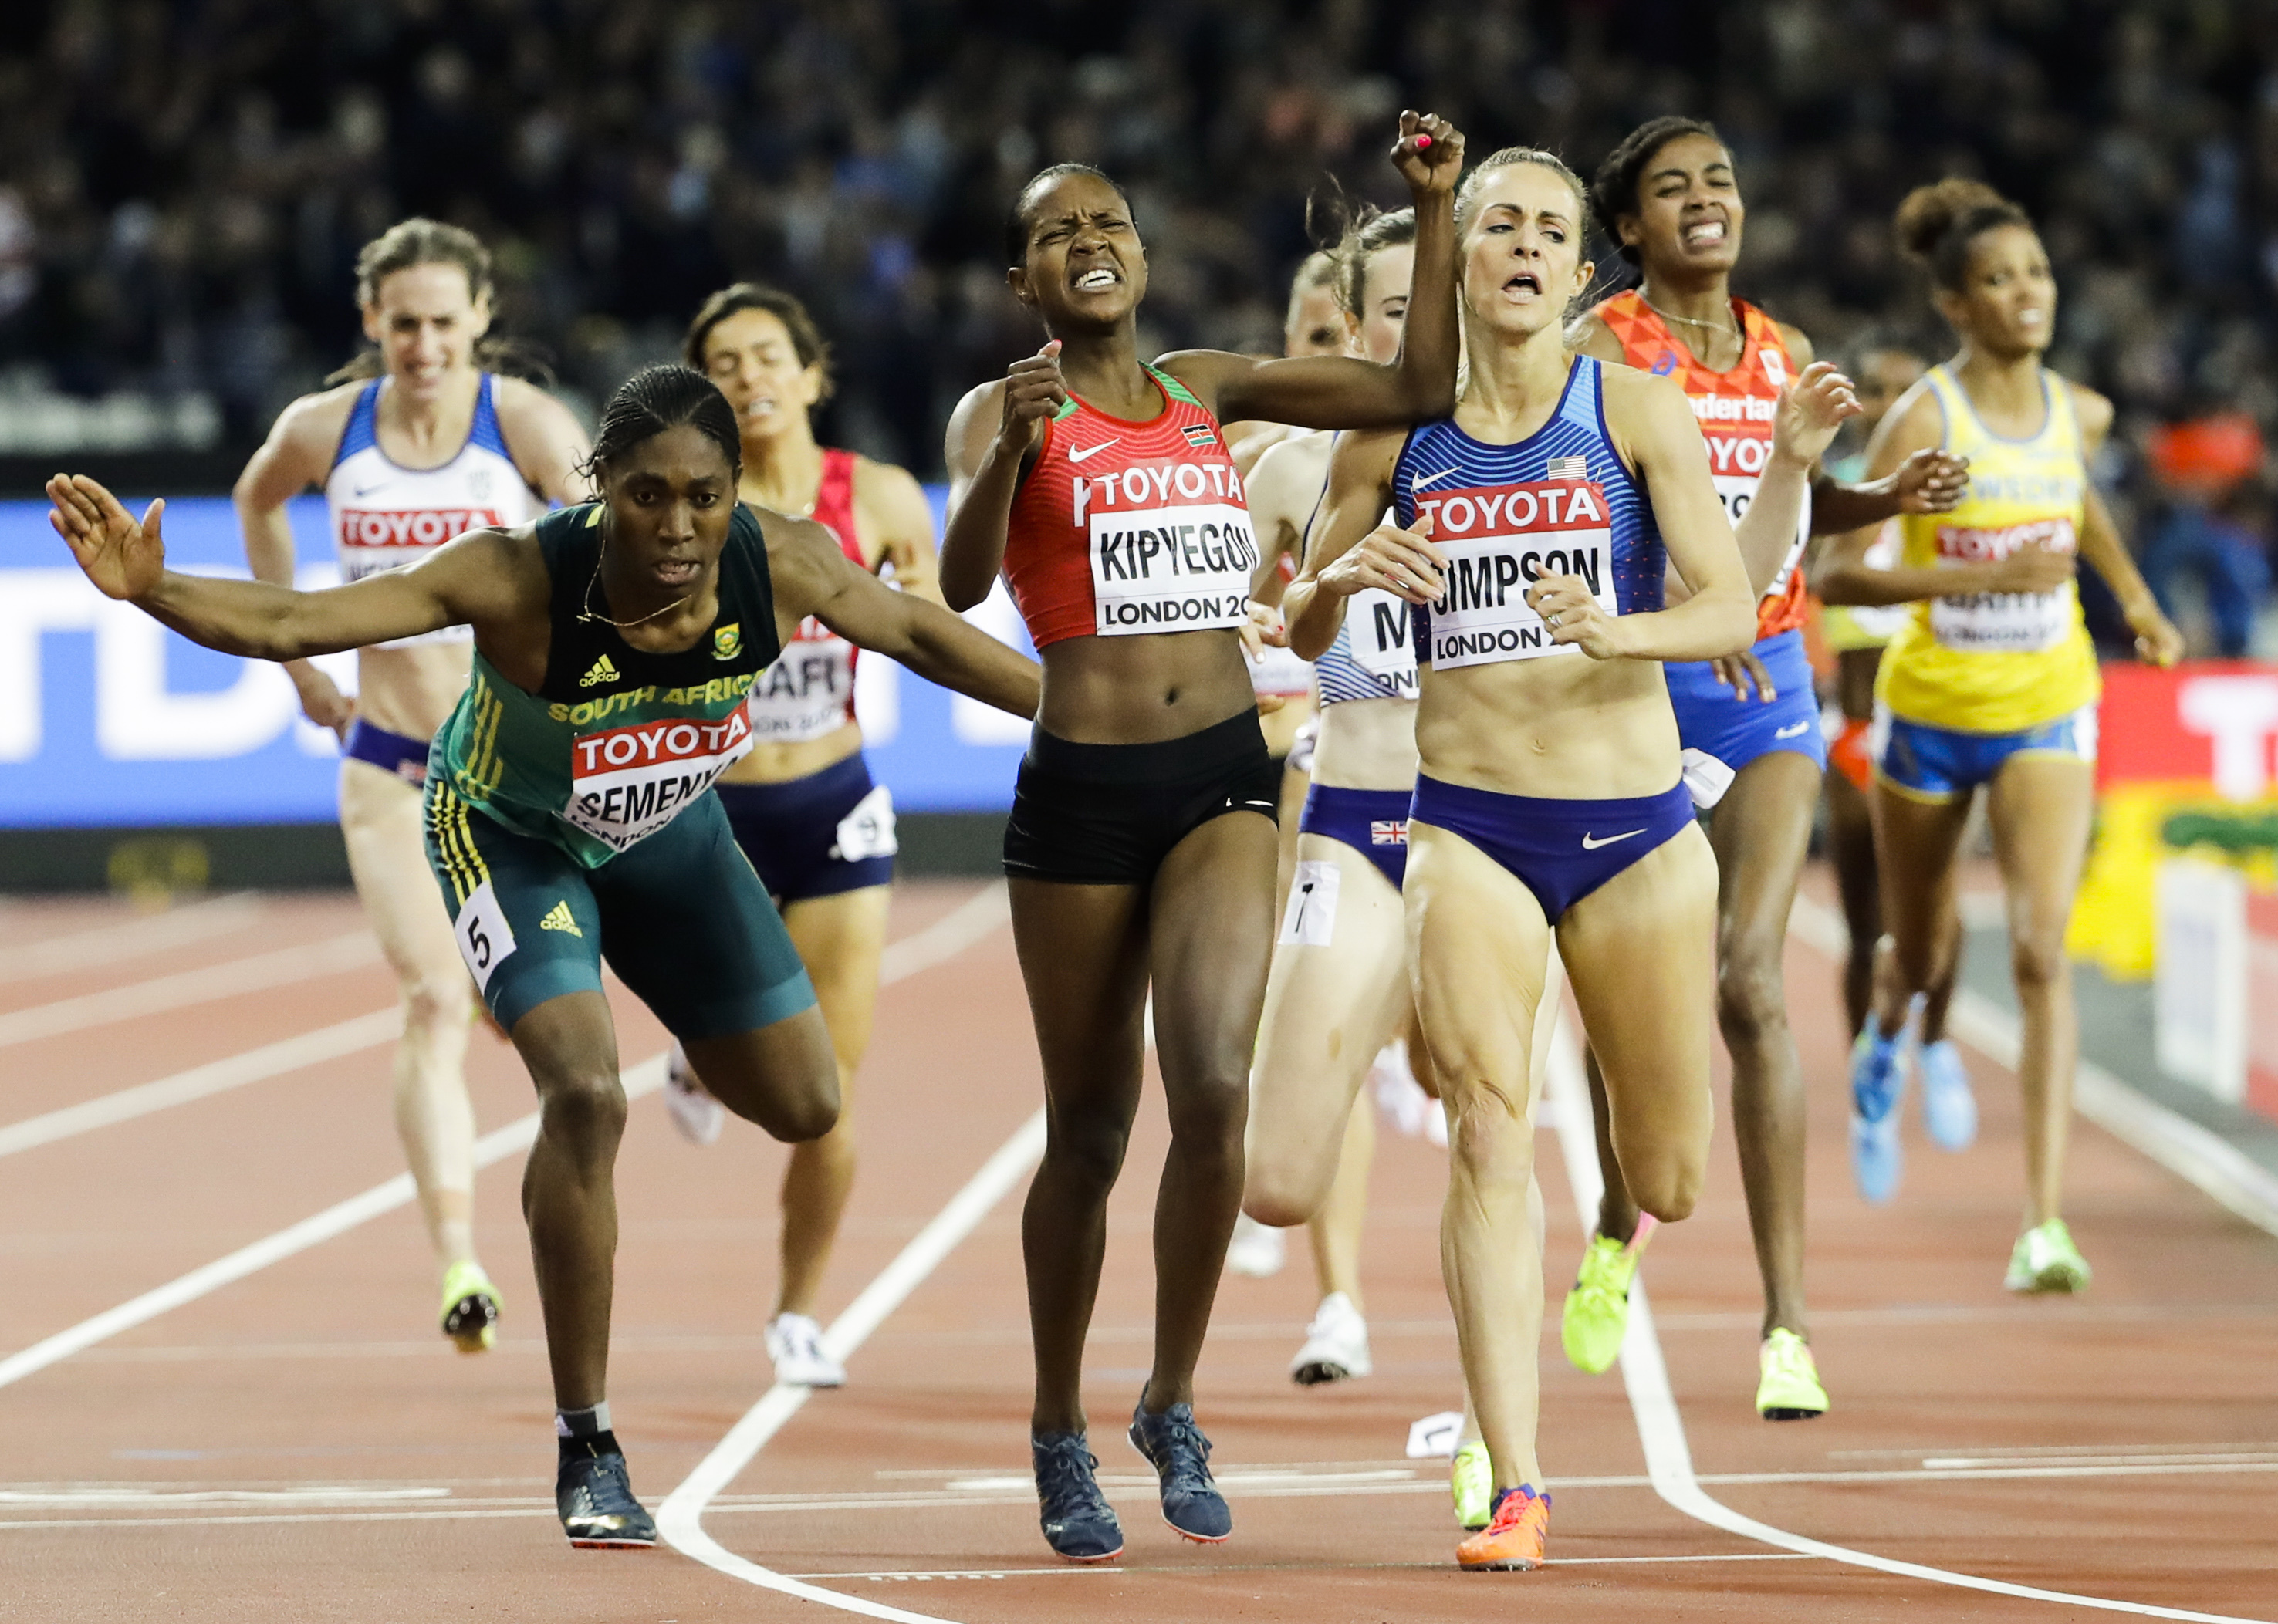 Kenya's Faith Chepngetich Kipyegon, center, celebrates as she wins the gold medal in the final of the Woman's 1500m during the World Athletics Championships in London Monday, Aug. 7, 2017. Others from left are: South Africa's Caster Semenya, bronze, and U